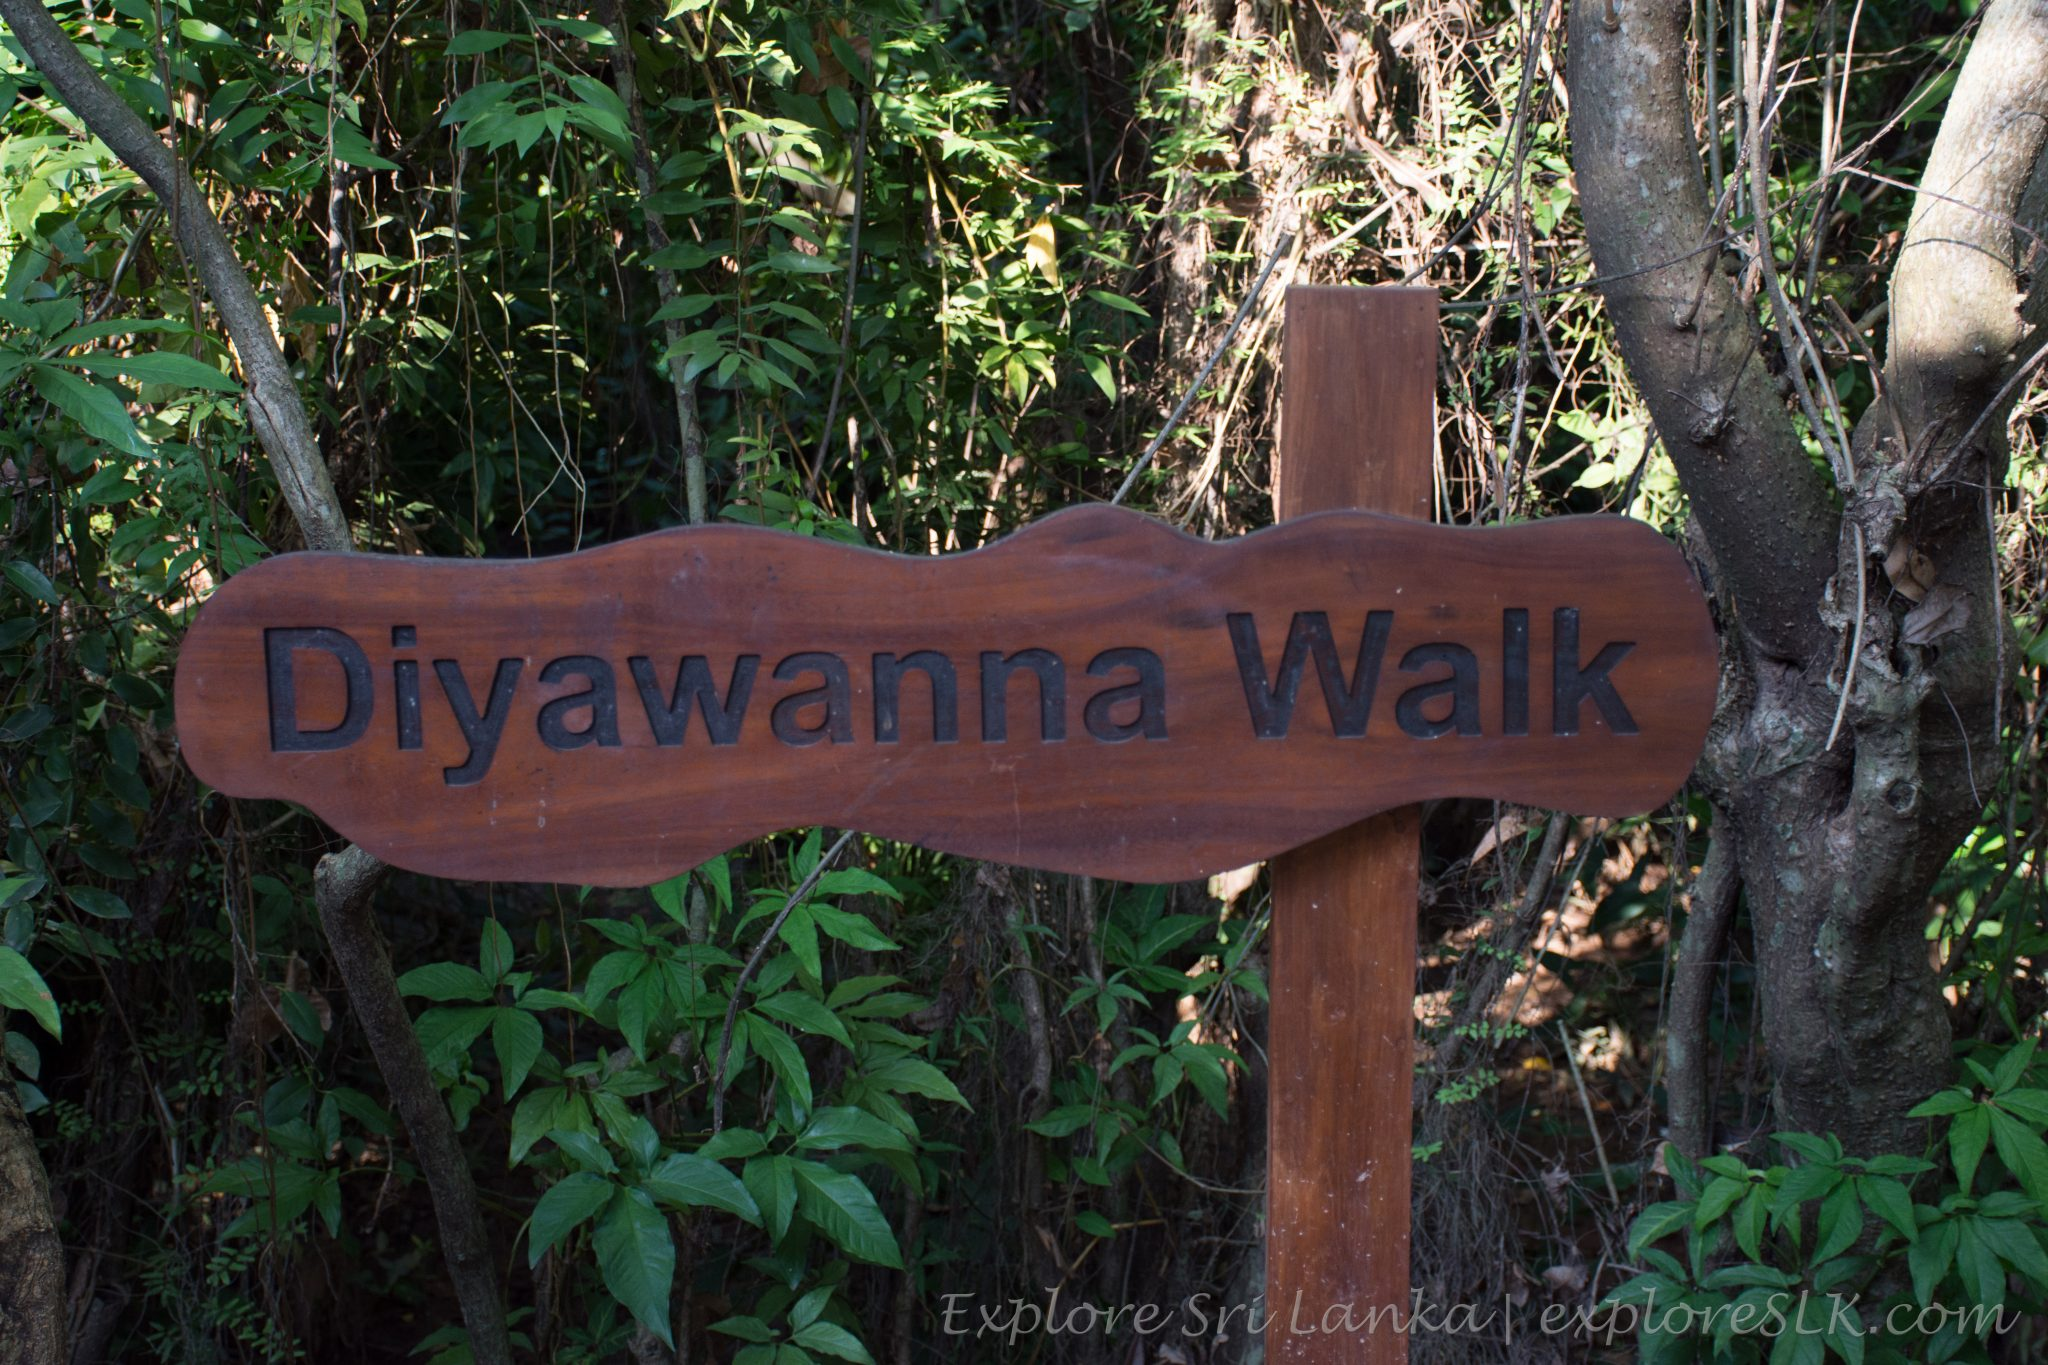 Diyawanna walk sign board